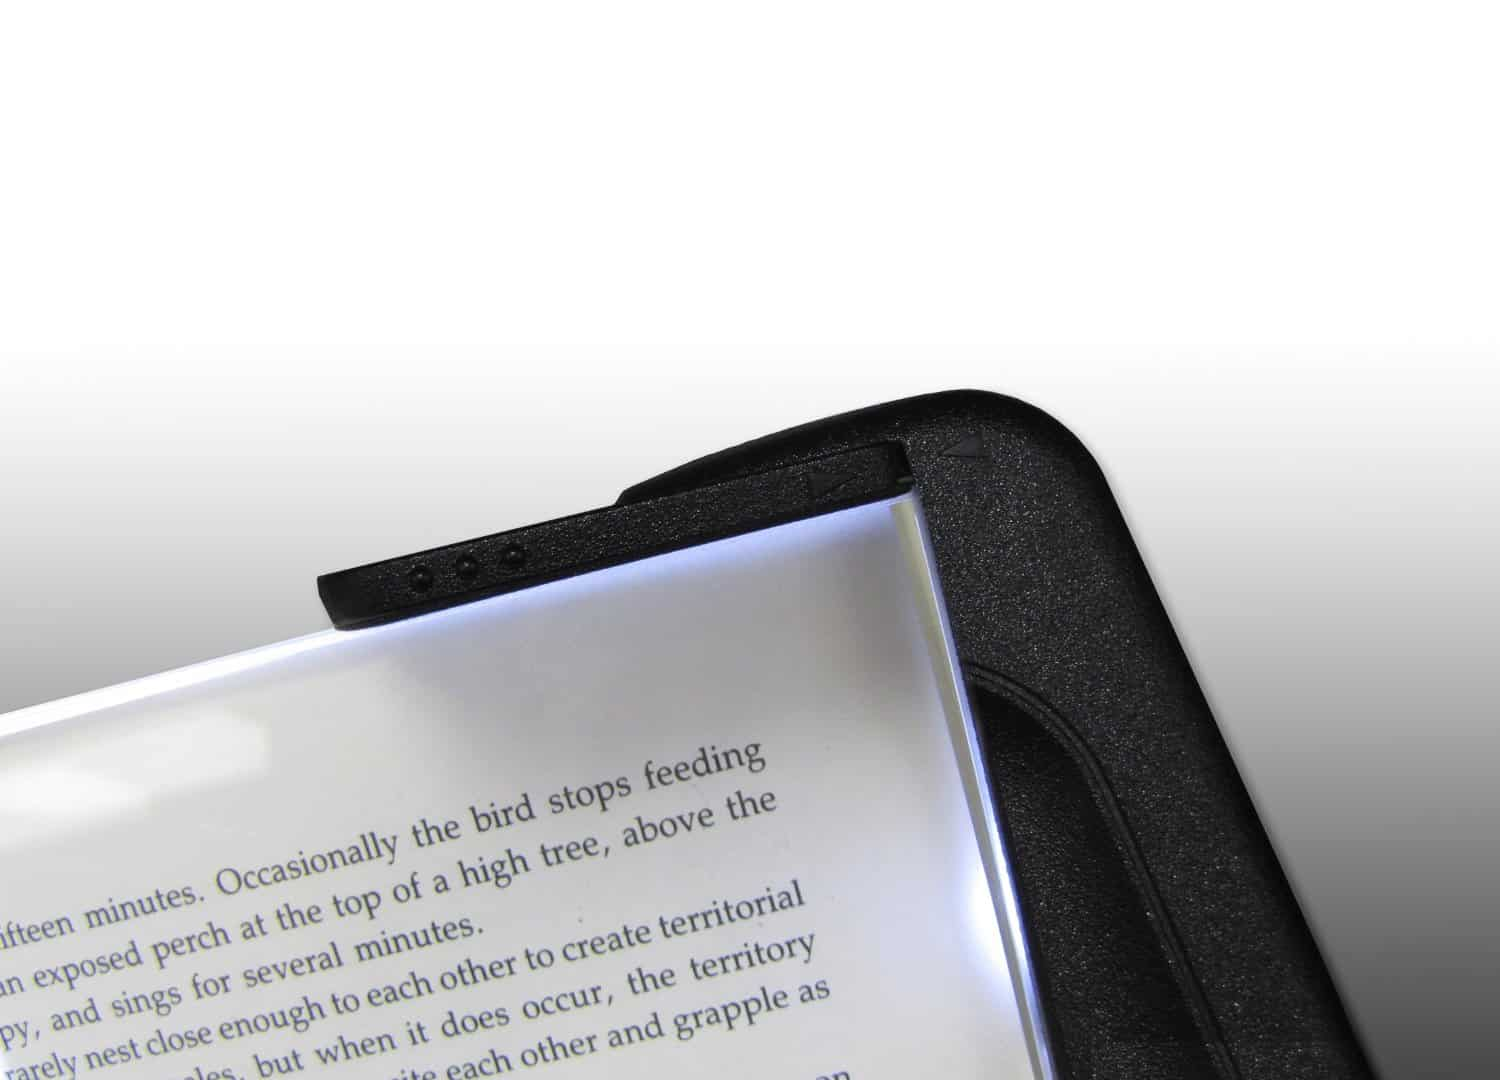 Carson PageGlow LED Reading Lights Gift for People Who Love to Read